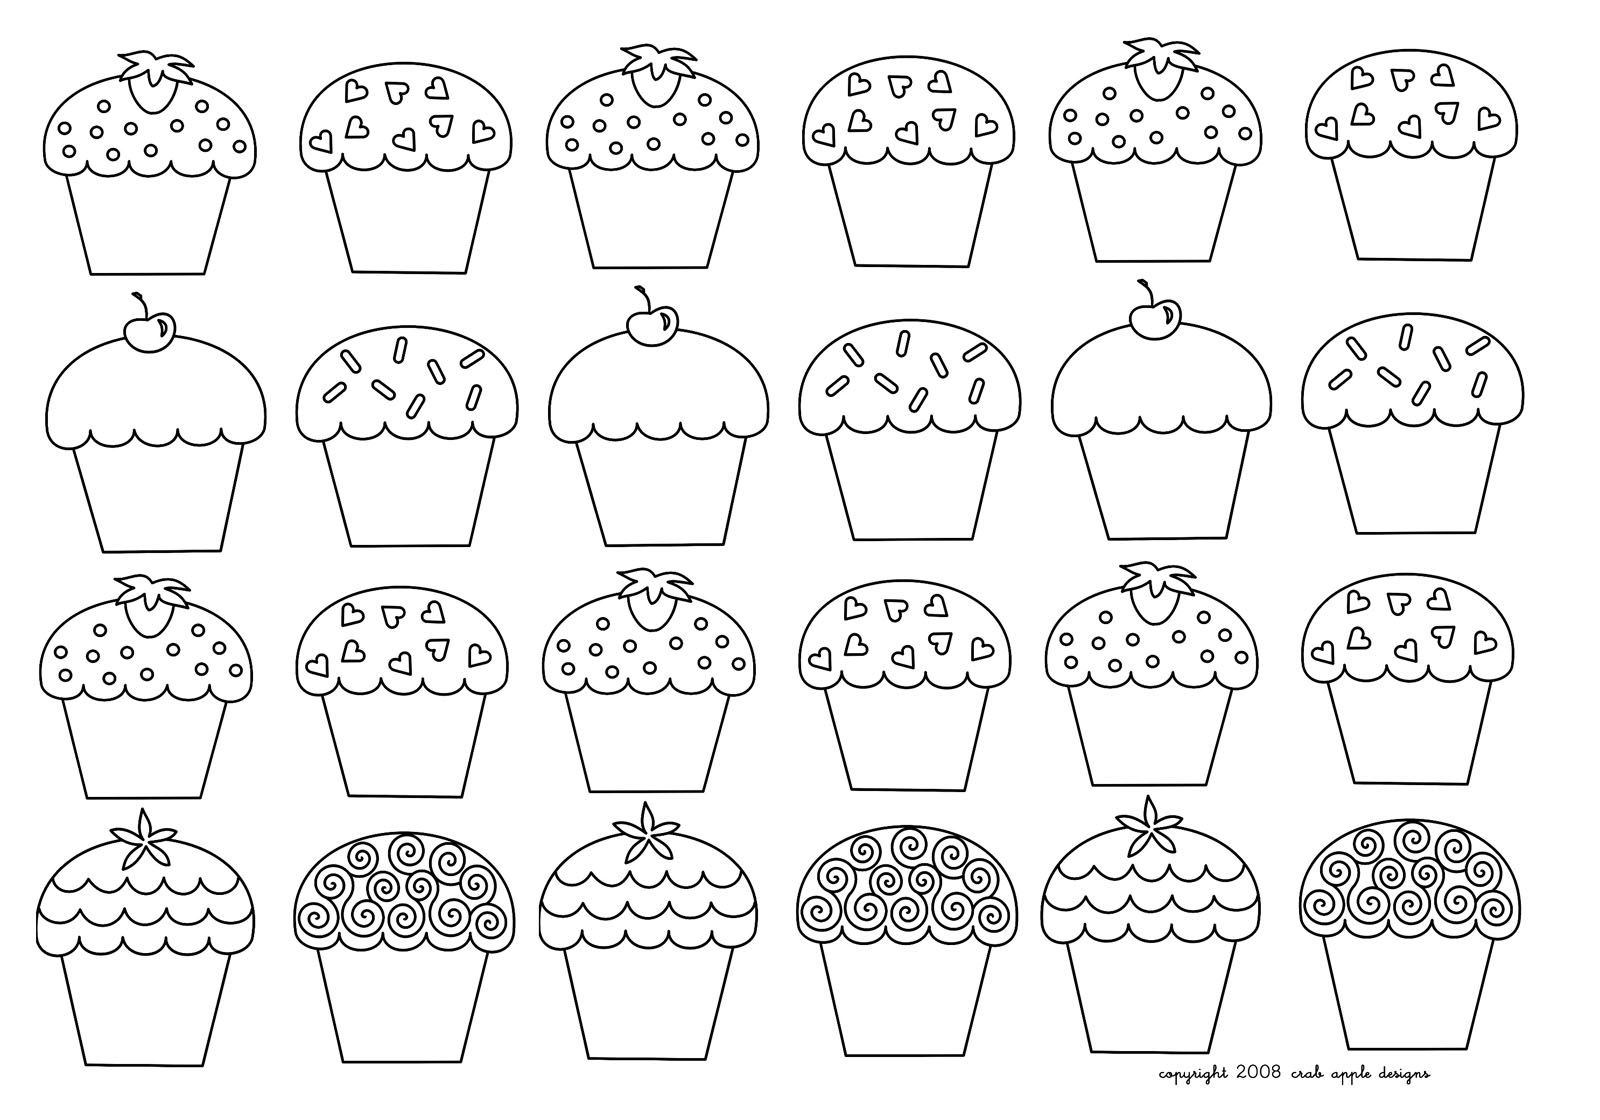 Coloring Pages For Adults : Coloring-mosaique